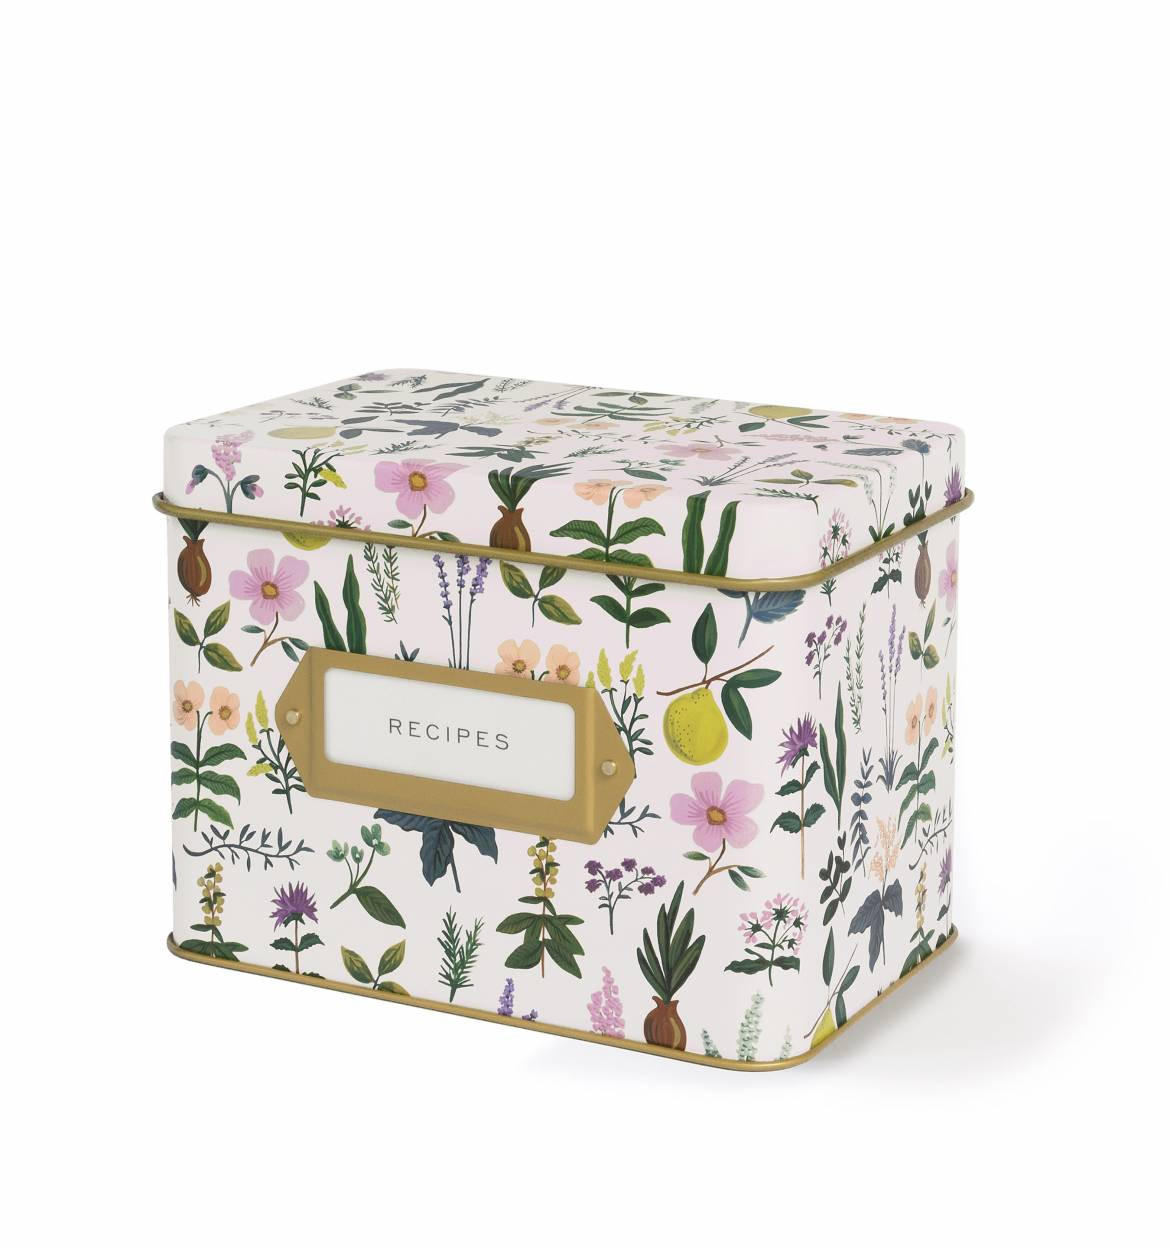 Image of Herb Garden Recipe Box and Cards